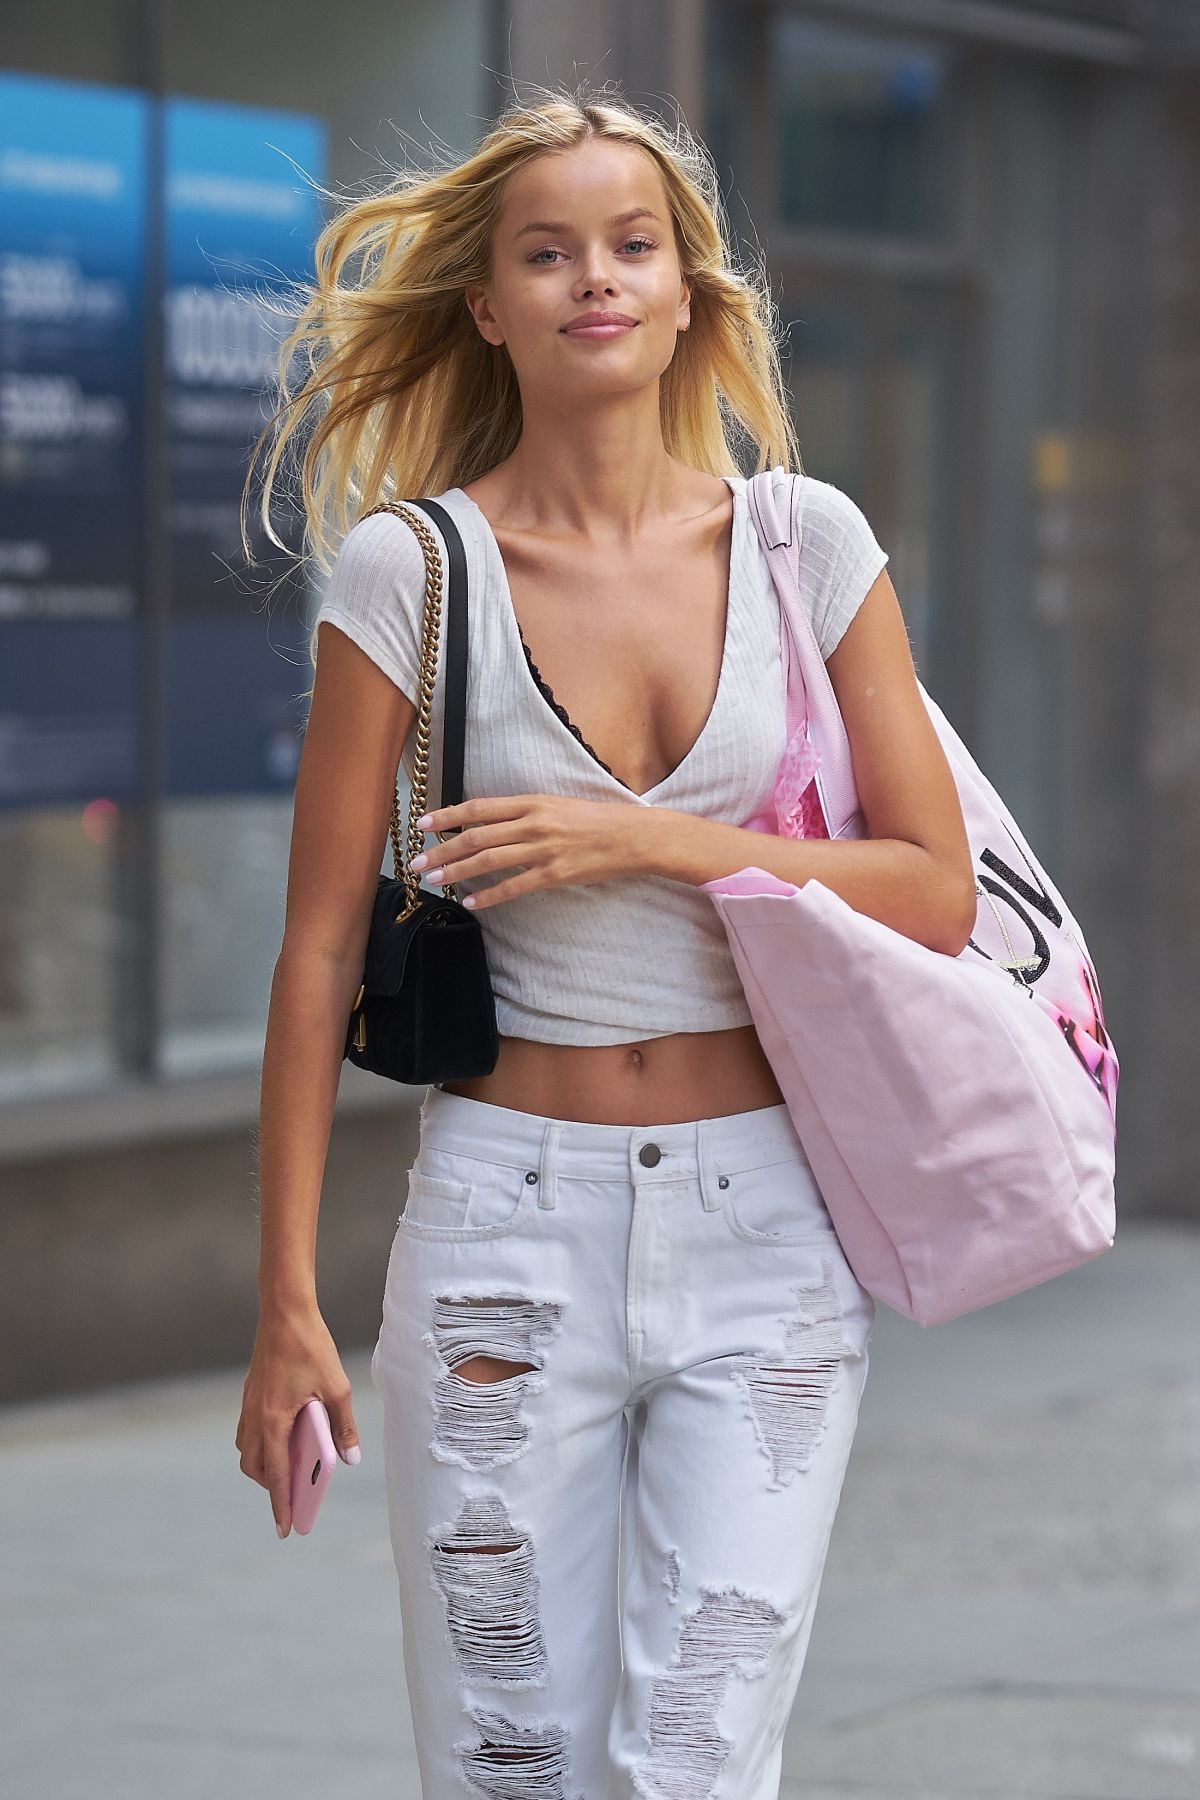 FRIDA AASEN at Fittings for Victoria's Secret Fashion Show 2017 in New York 08/26/2017